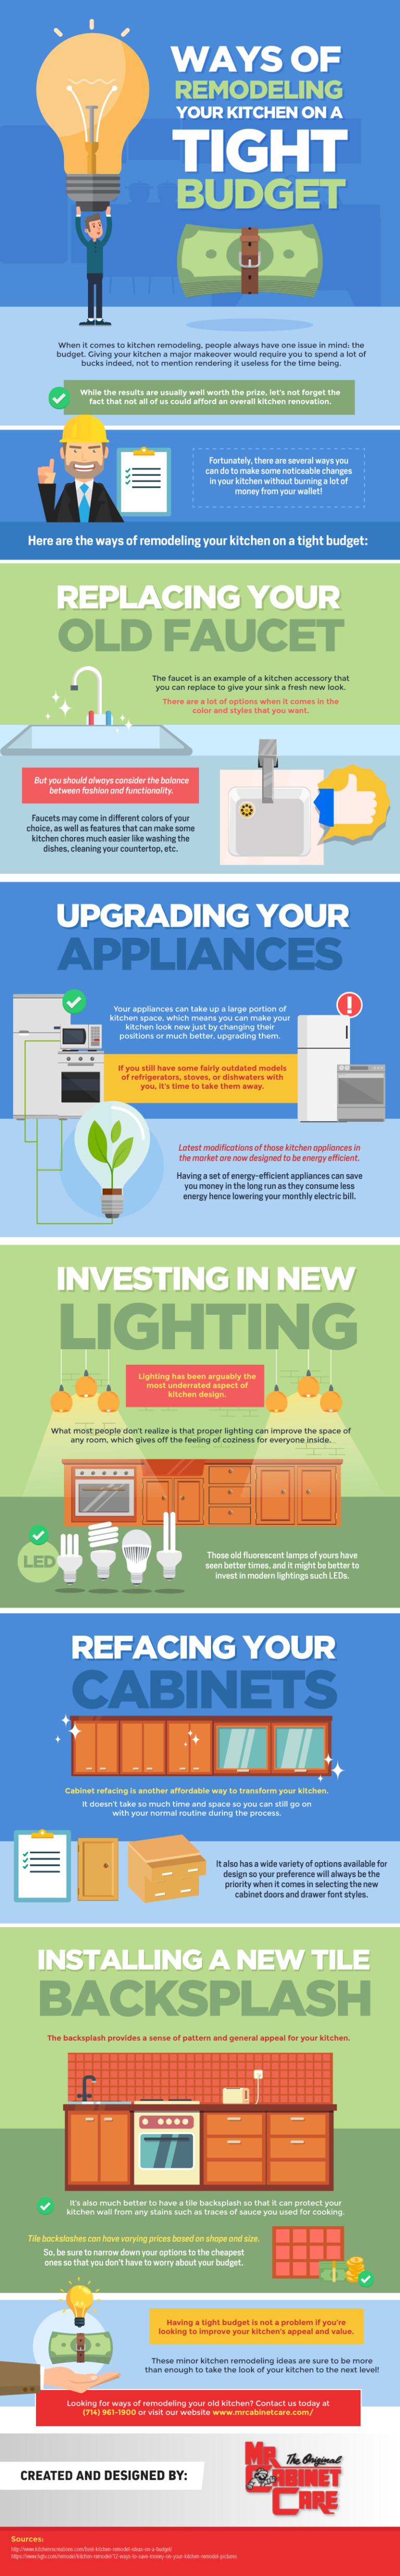 Ways of Remodeling your Kitchen on a Tight Budget #infographic